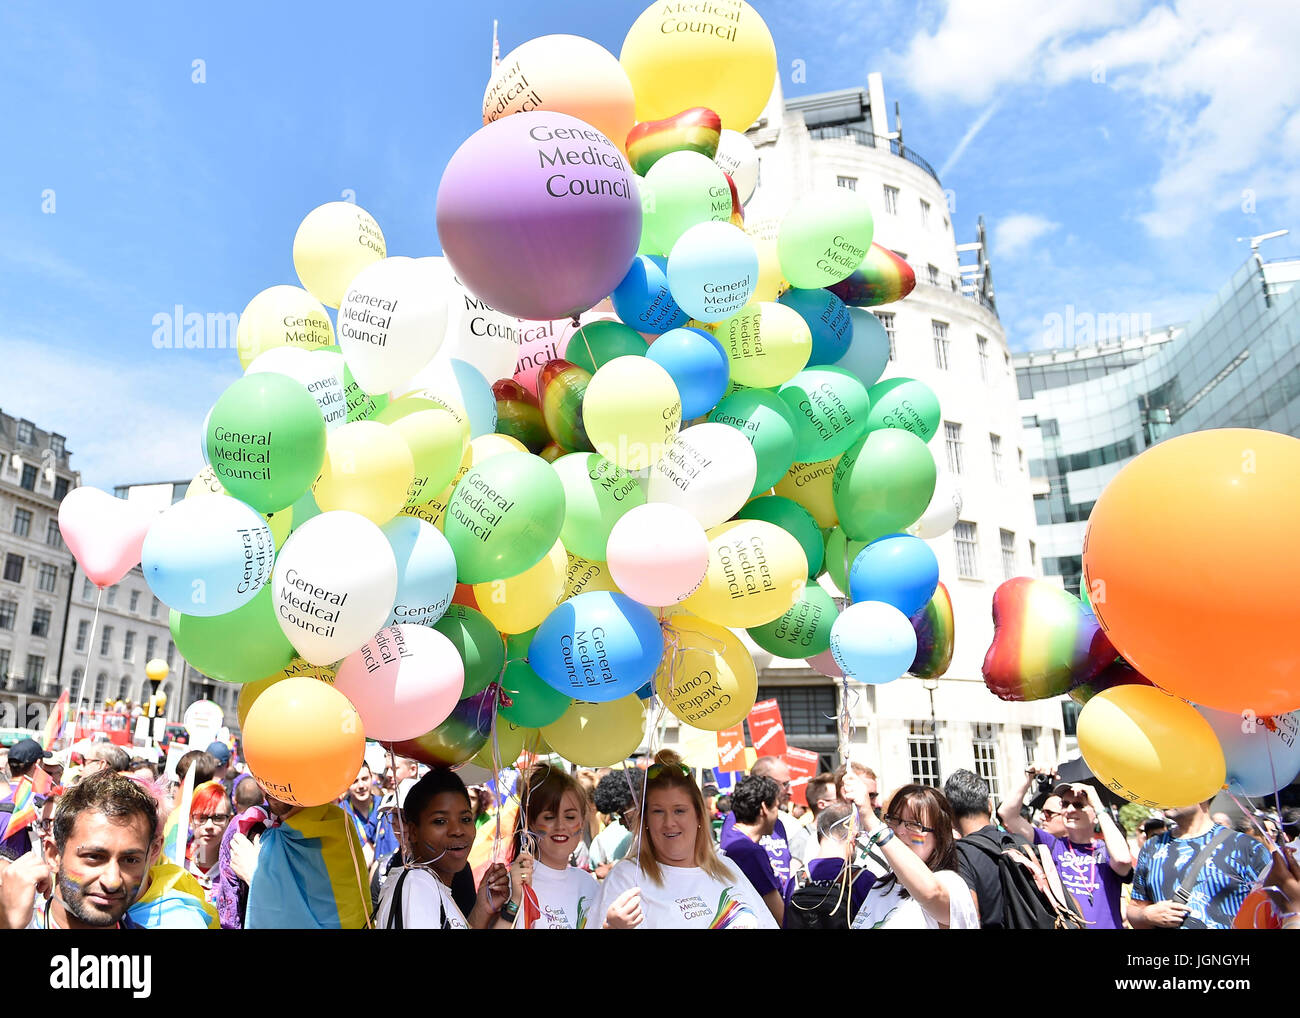 London, UK. 08th July, 2017. General Medical Centre took part in the Pride during Pride In London on Saturday. Photo - Stock Image